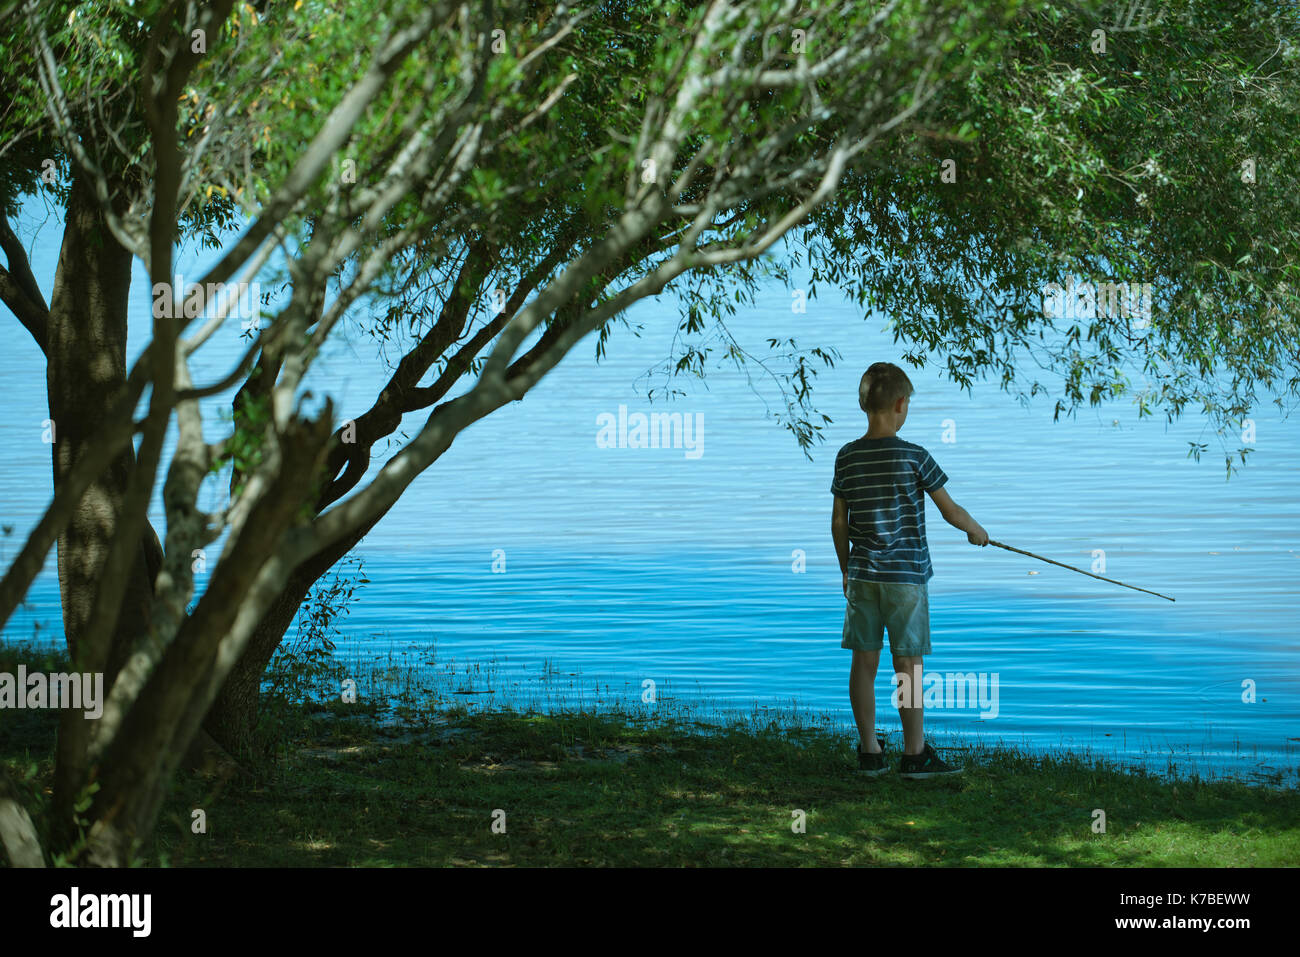 Boy fishing, rear view - Stock Image